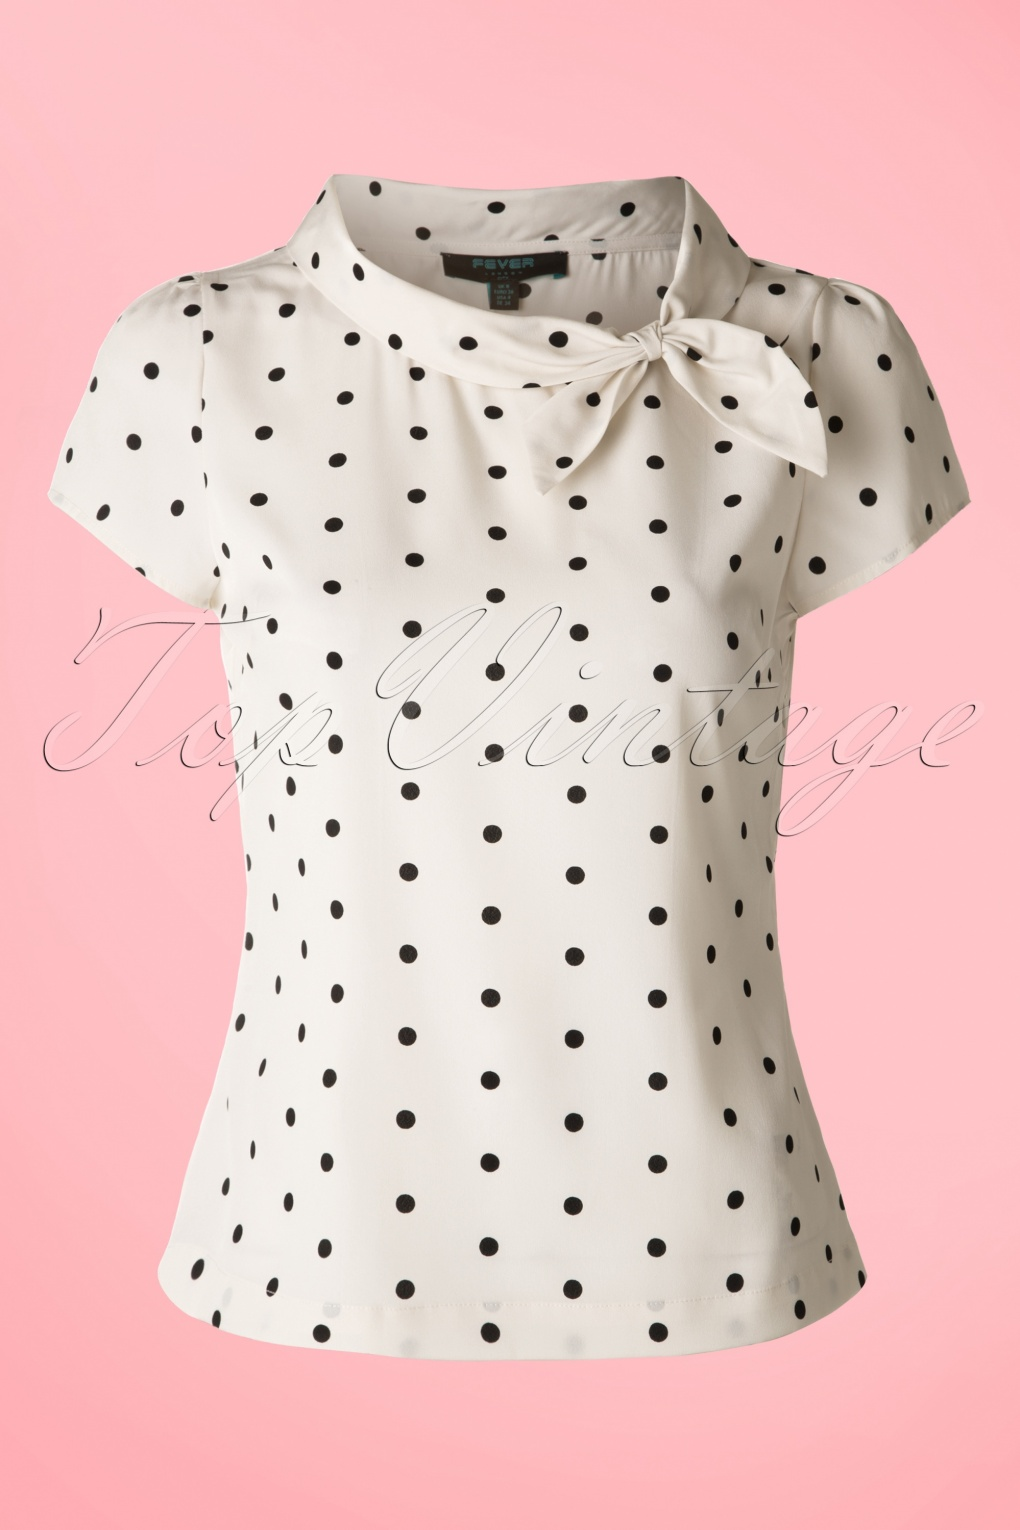 1950s Rockabilly & Pinup Tops, Shirts, Blouses 50s Garland Polkadot Top in Cream £42.31 AT vintagedancer.com